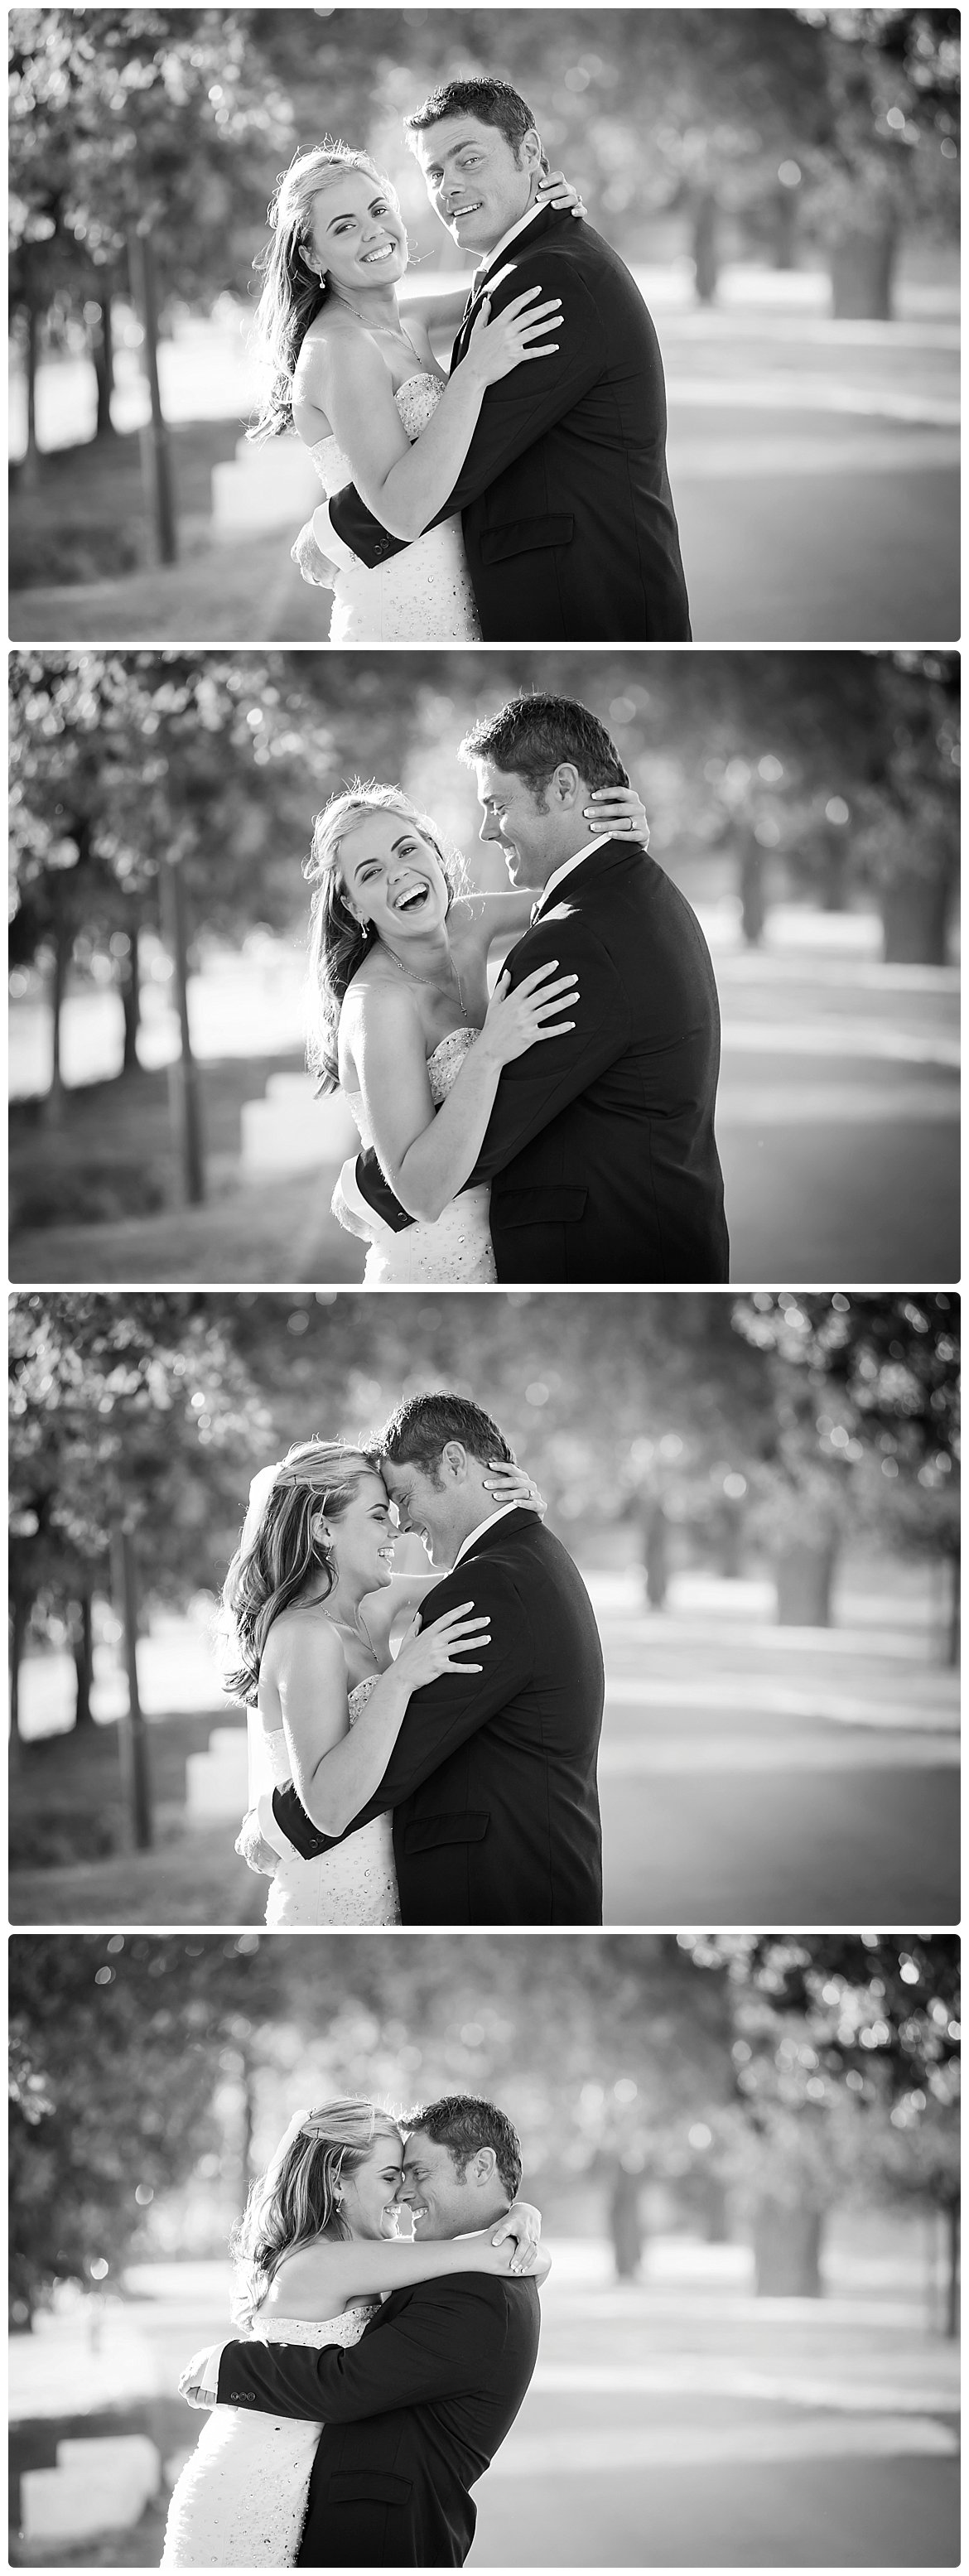 cape-town-wedding-photographer-delvera-joanne-markland-zack-heidi-0033